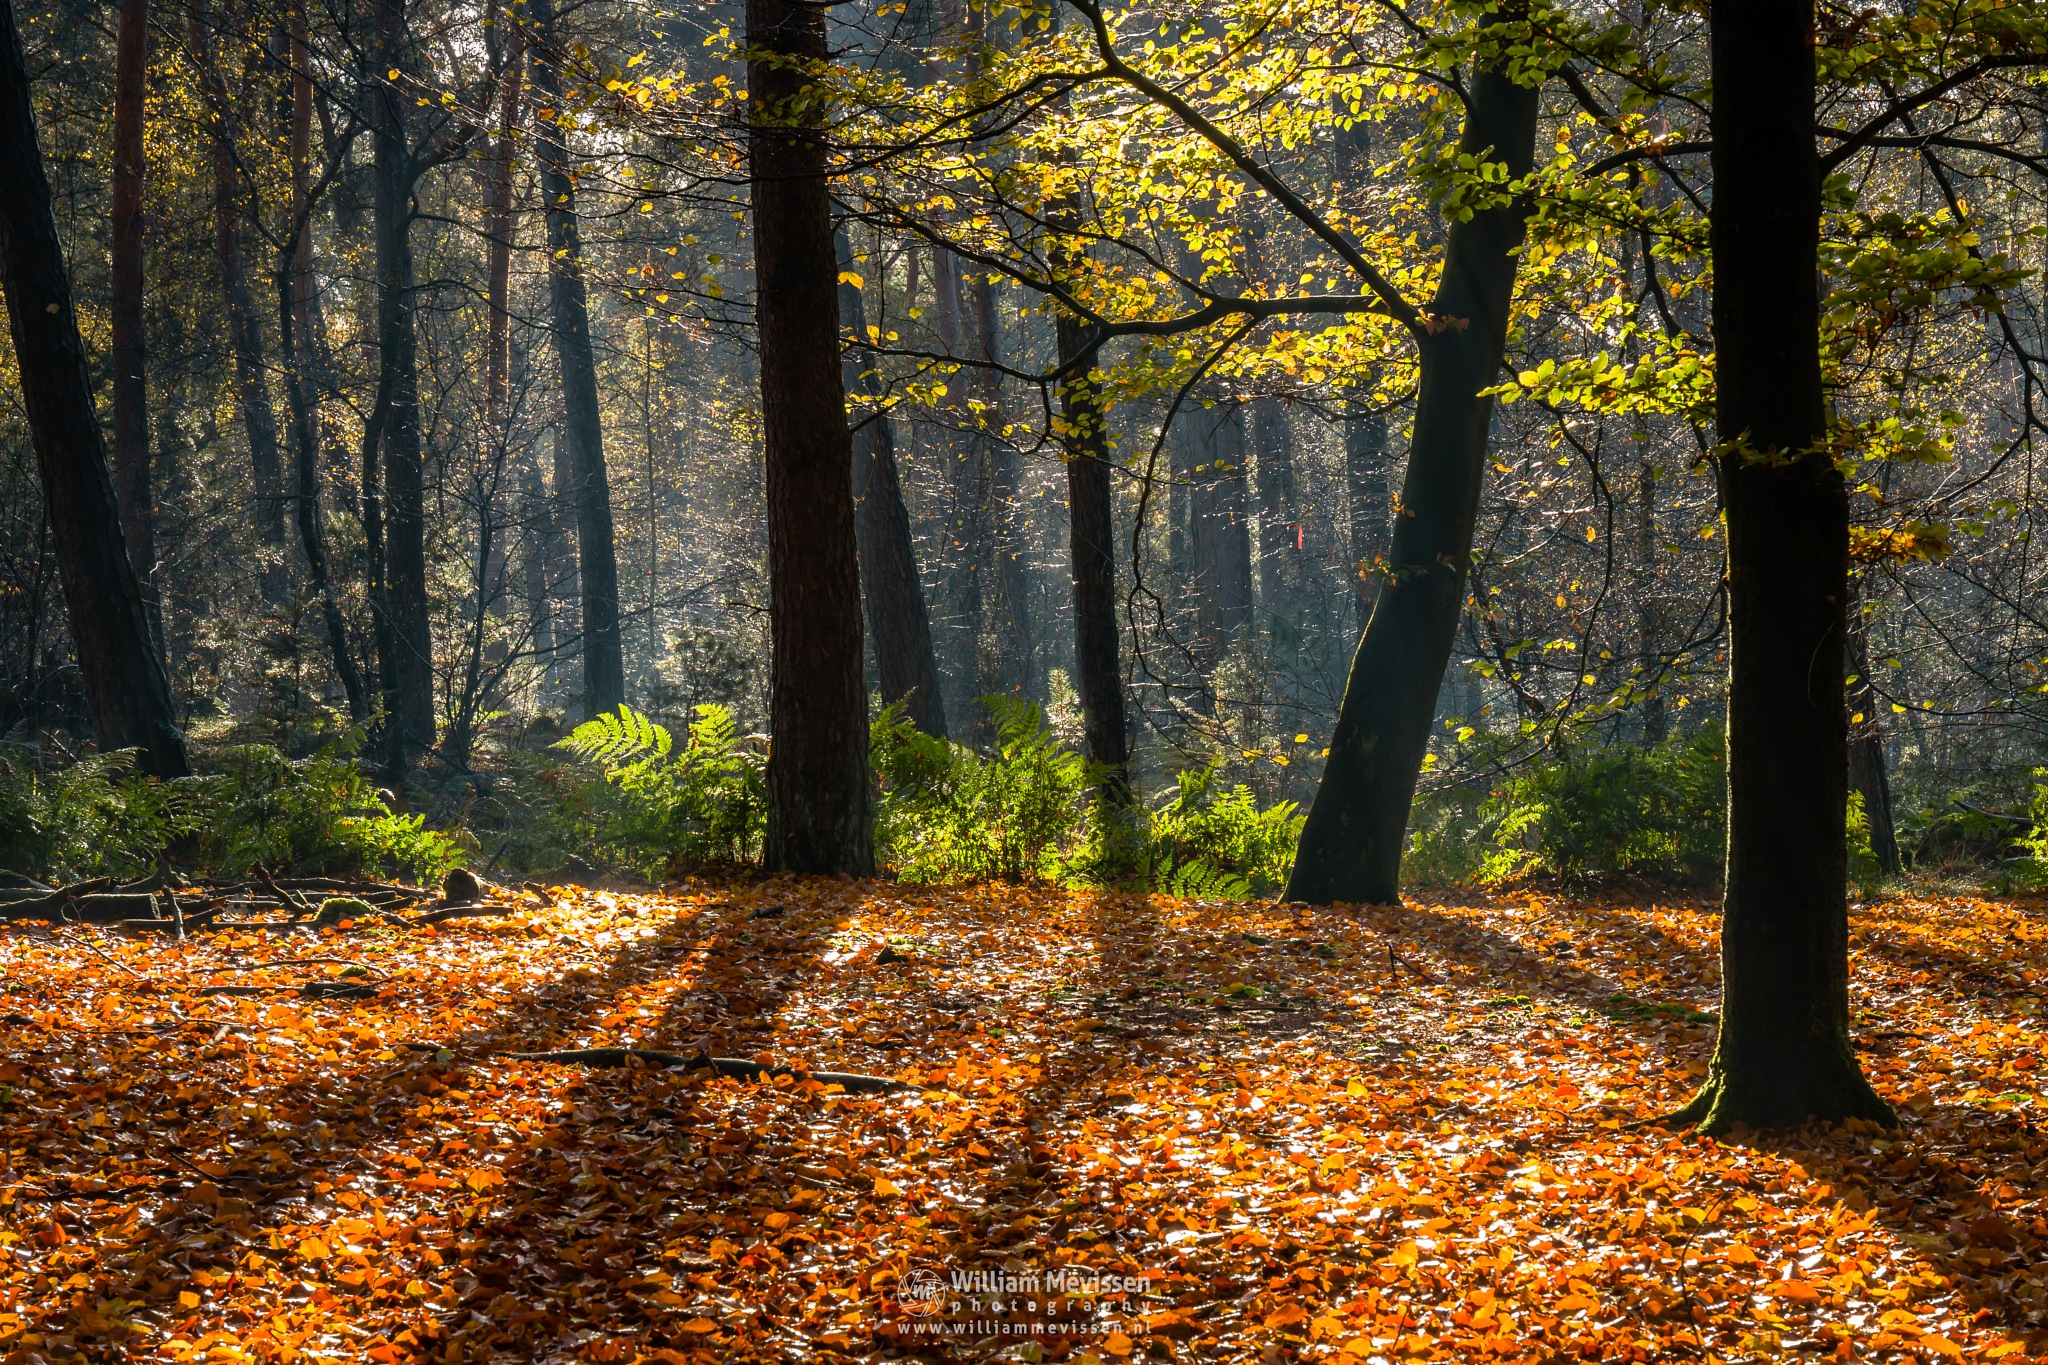 Light And Shadows by William Mevissen